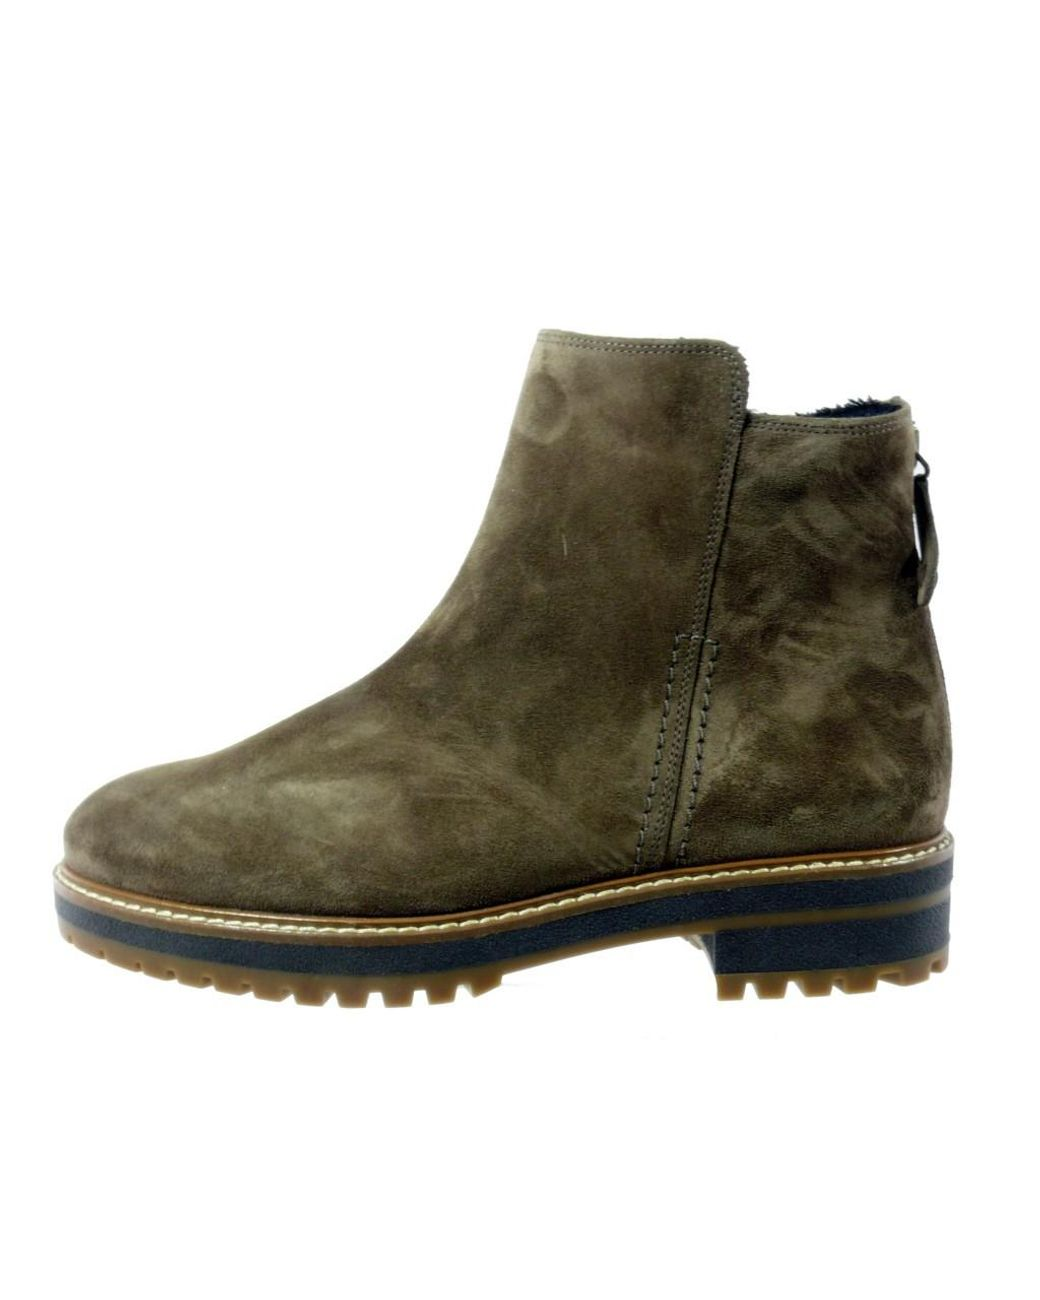 shop best sellers new concept wholesale price Wo Ankle Boots Brown 0063-9464-023/stiefelette 9464-023